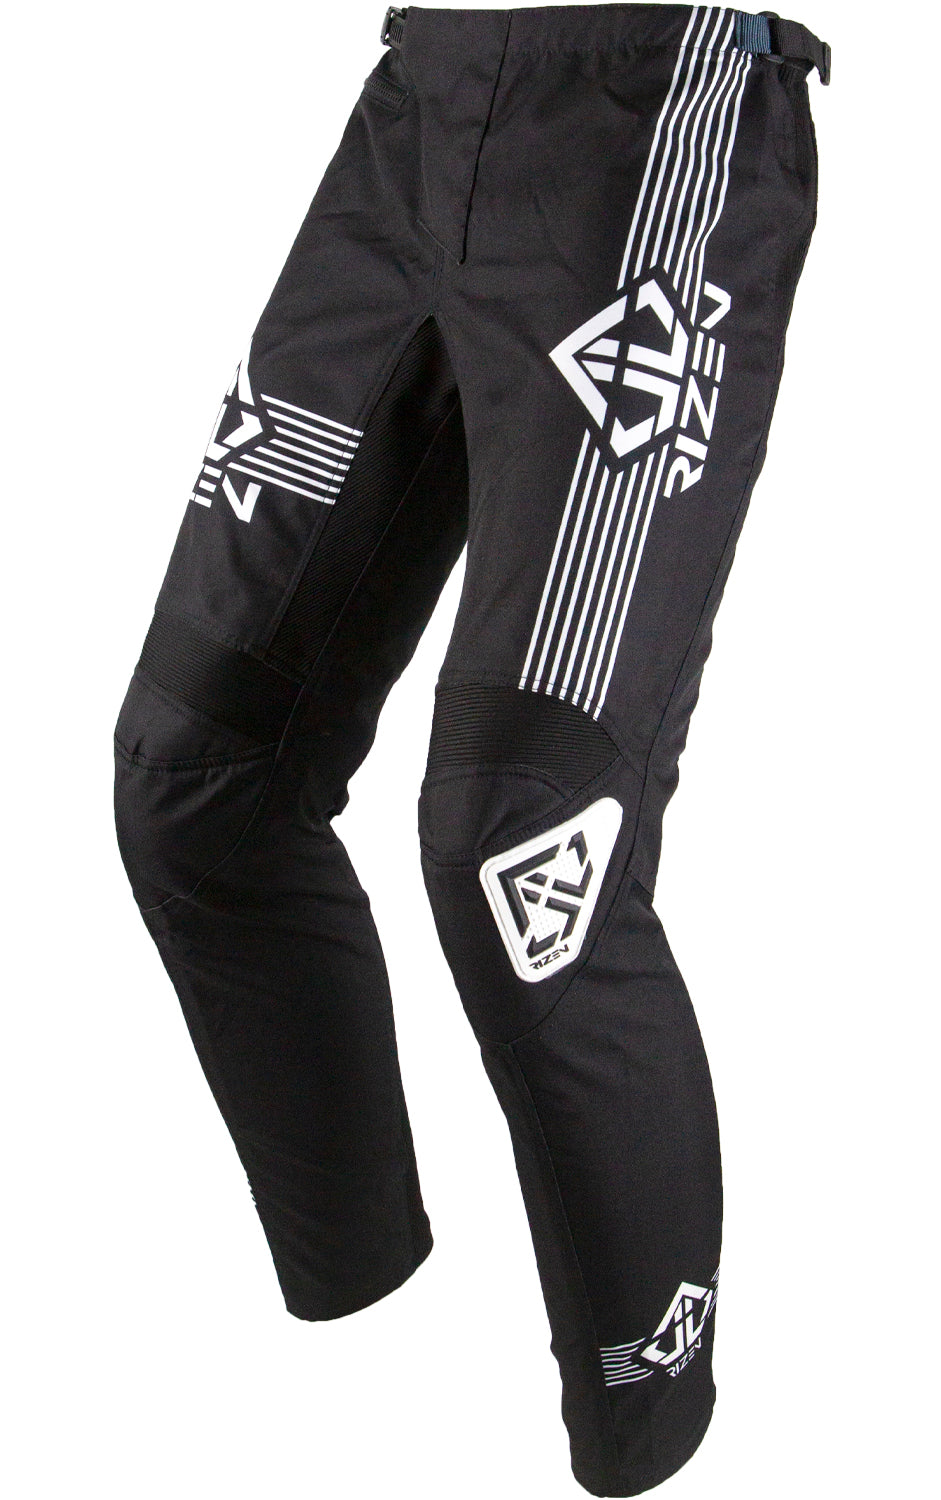 PHAZE 1 PANTS KIDS - BICYCLE - BLACK/WHITE